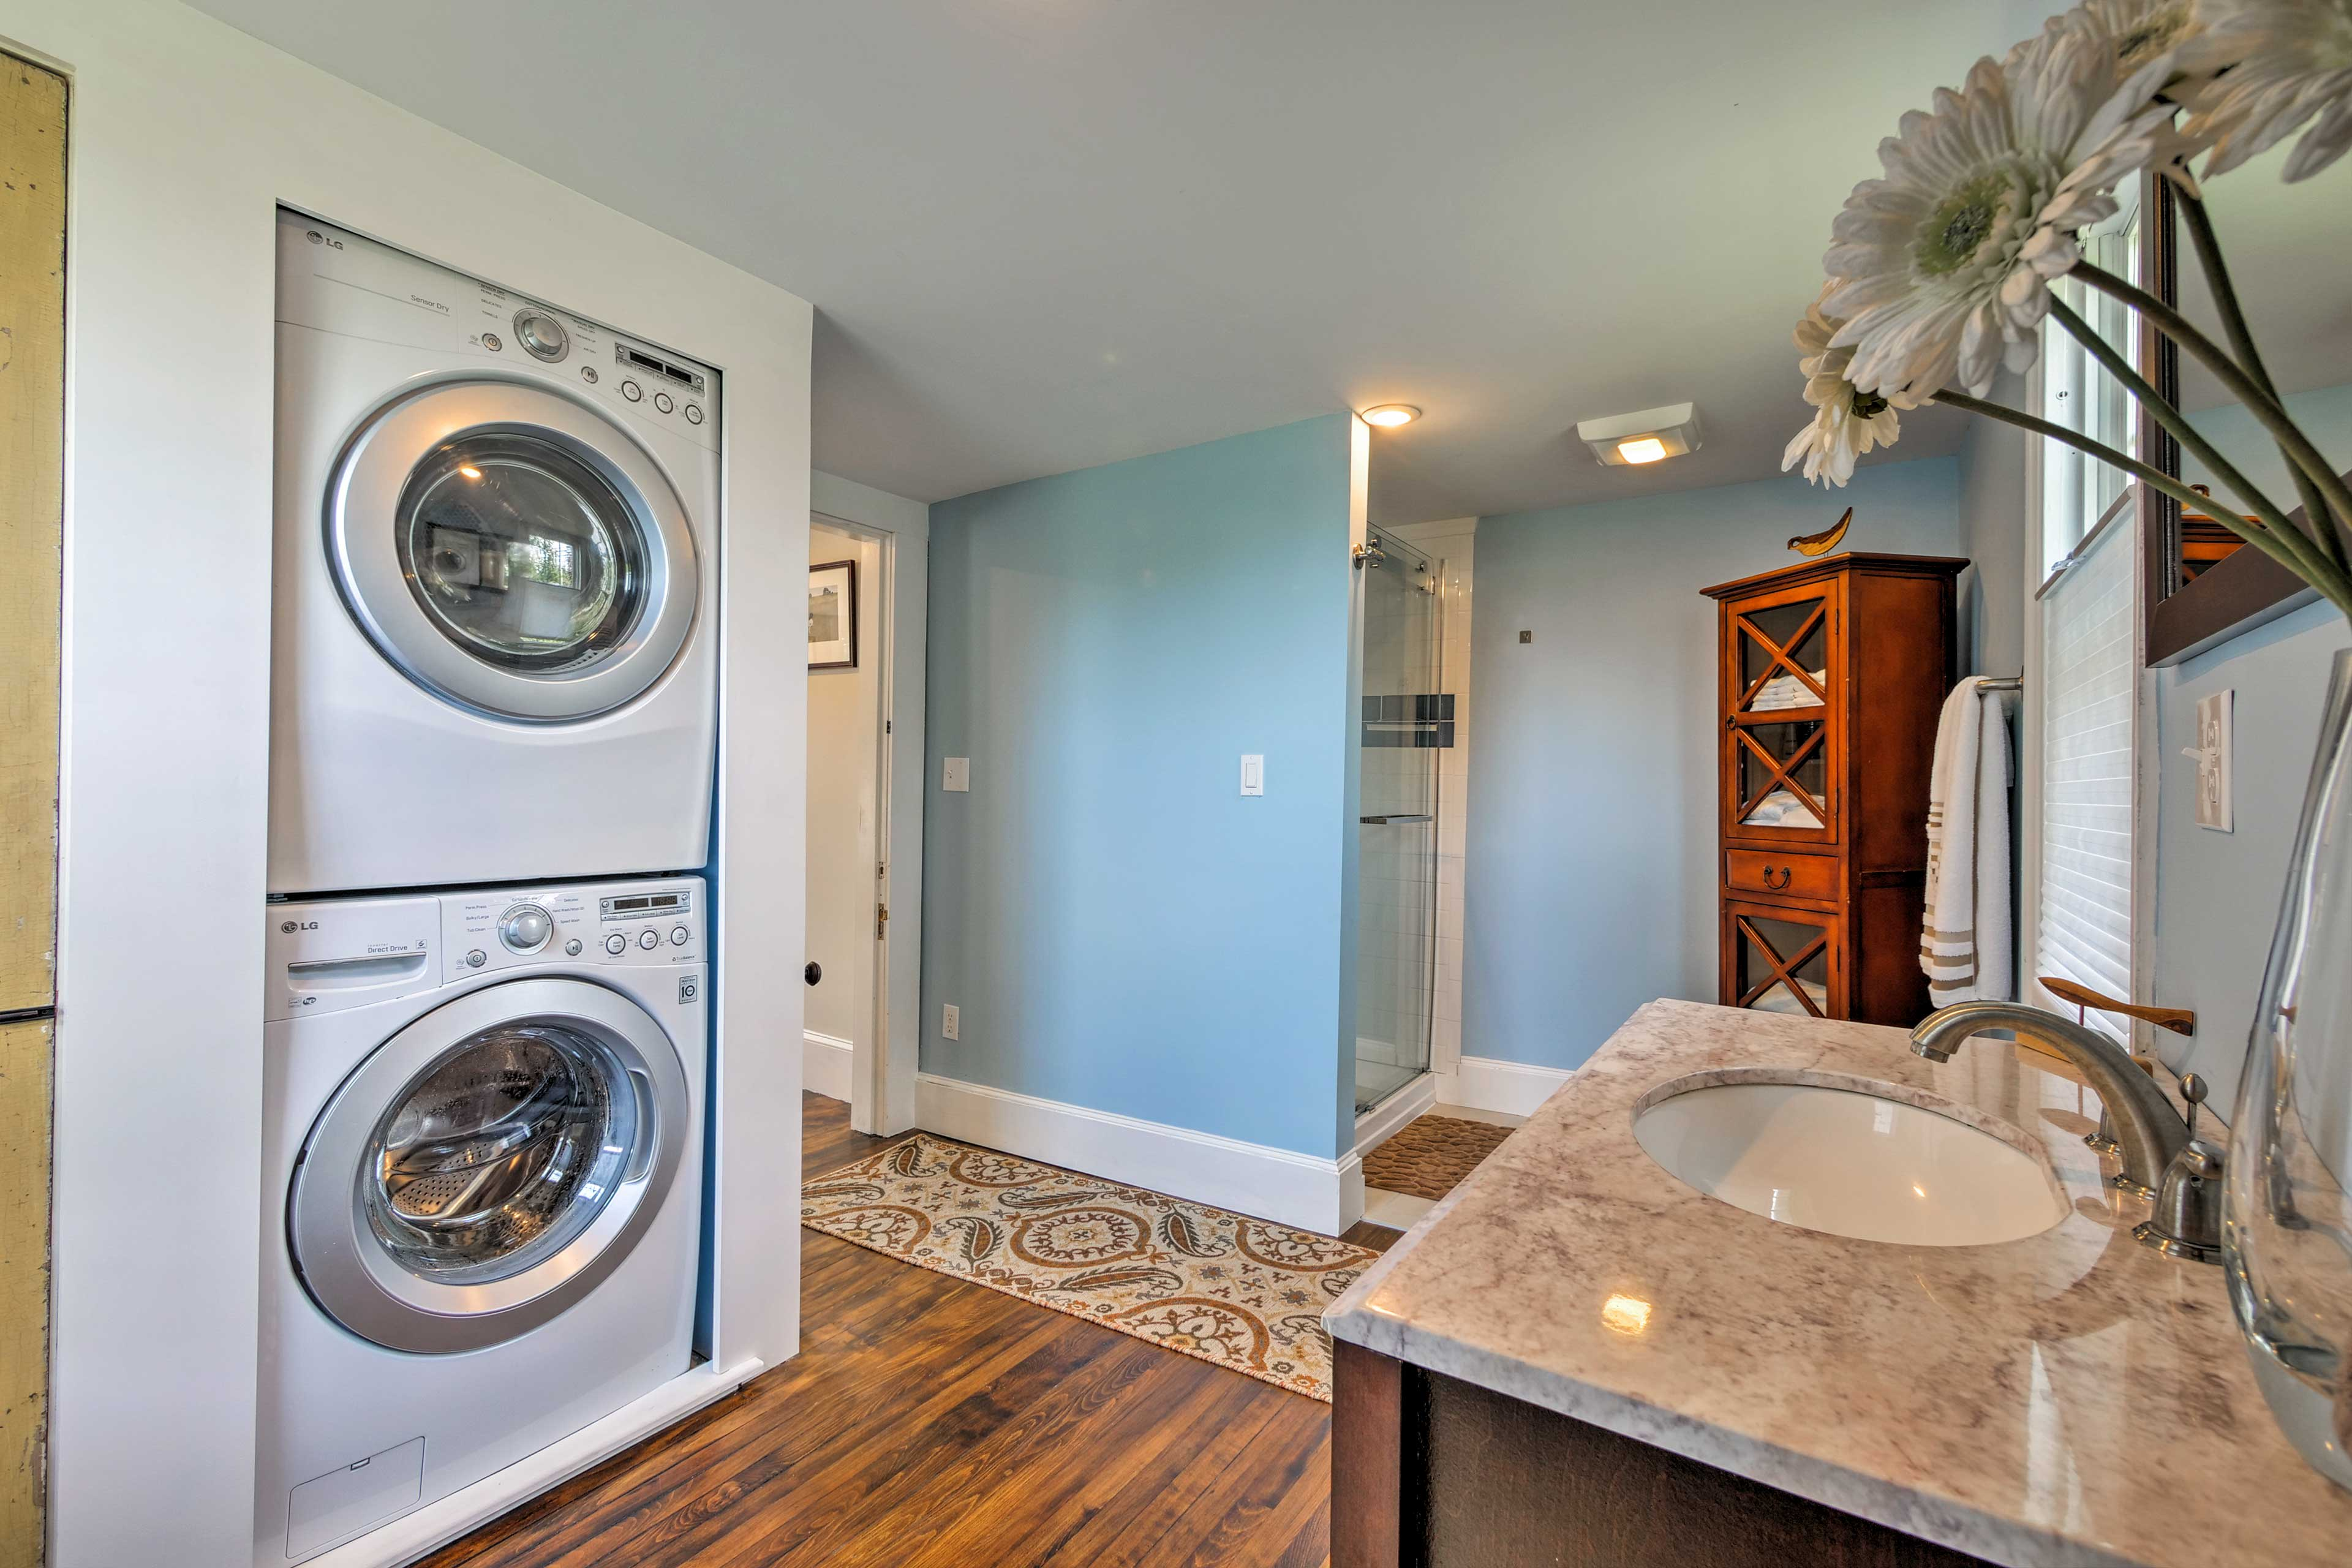 Keep your clothes fresh with the washer and dryer.